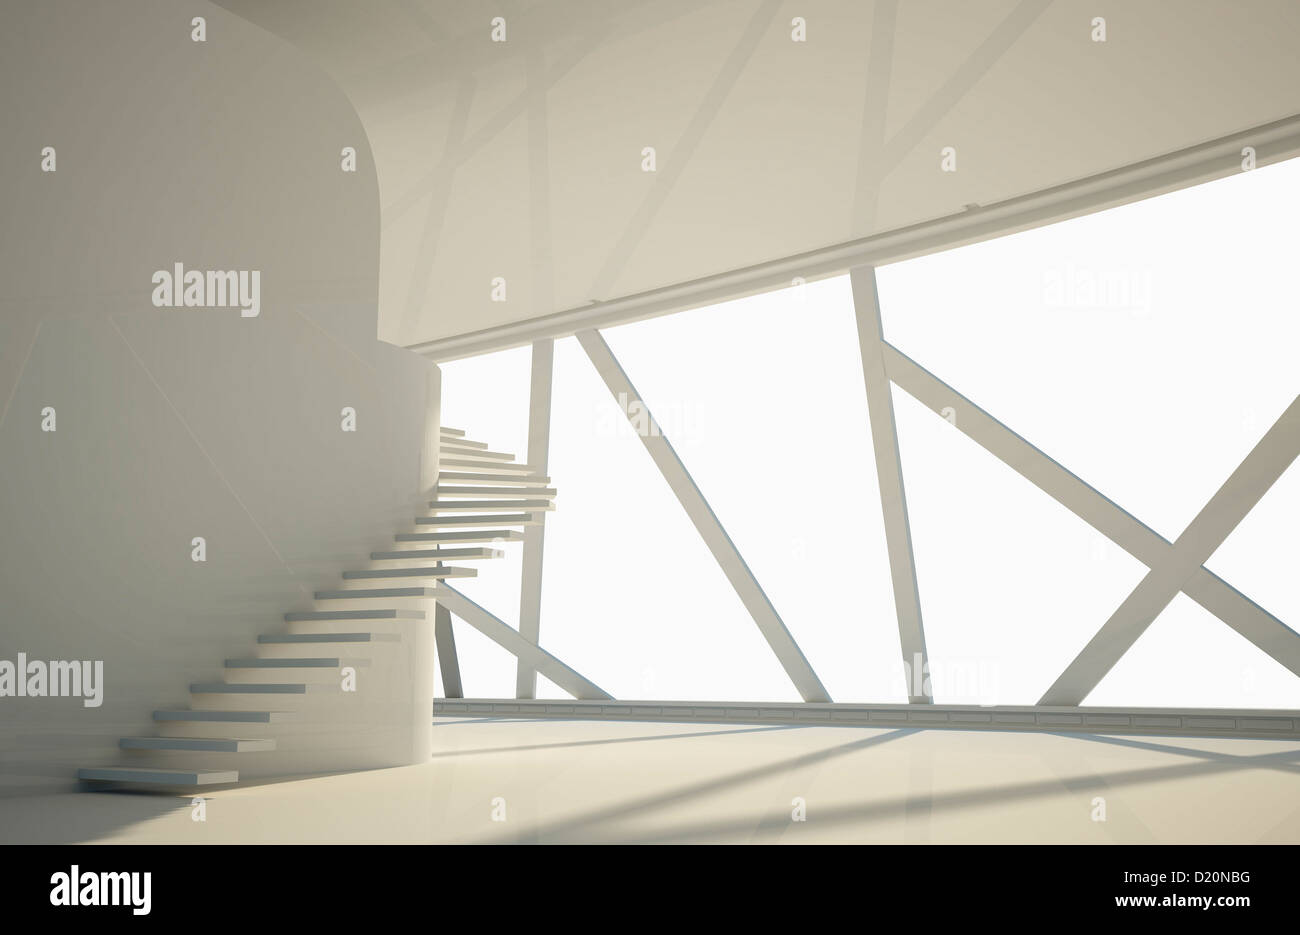 Modern interior of a floor with stairs and unique window for Unique window designs